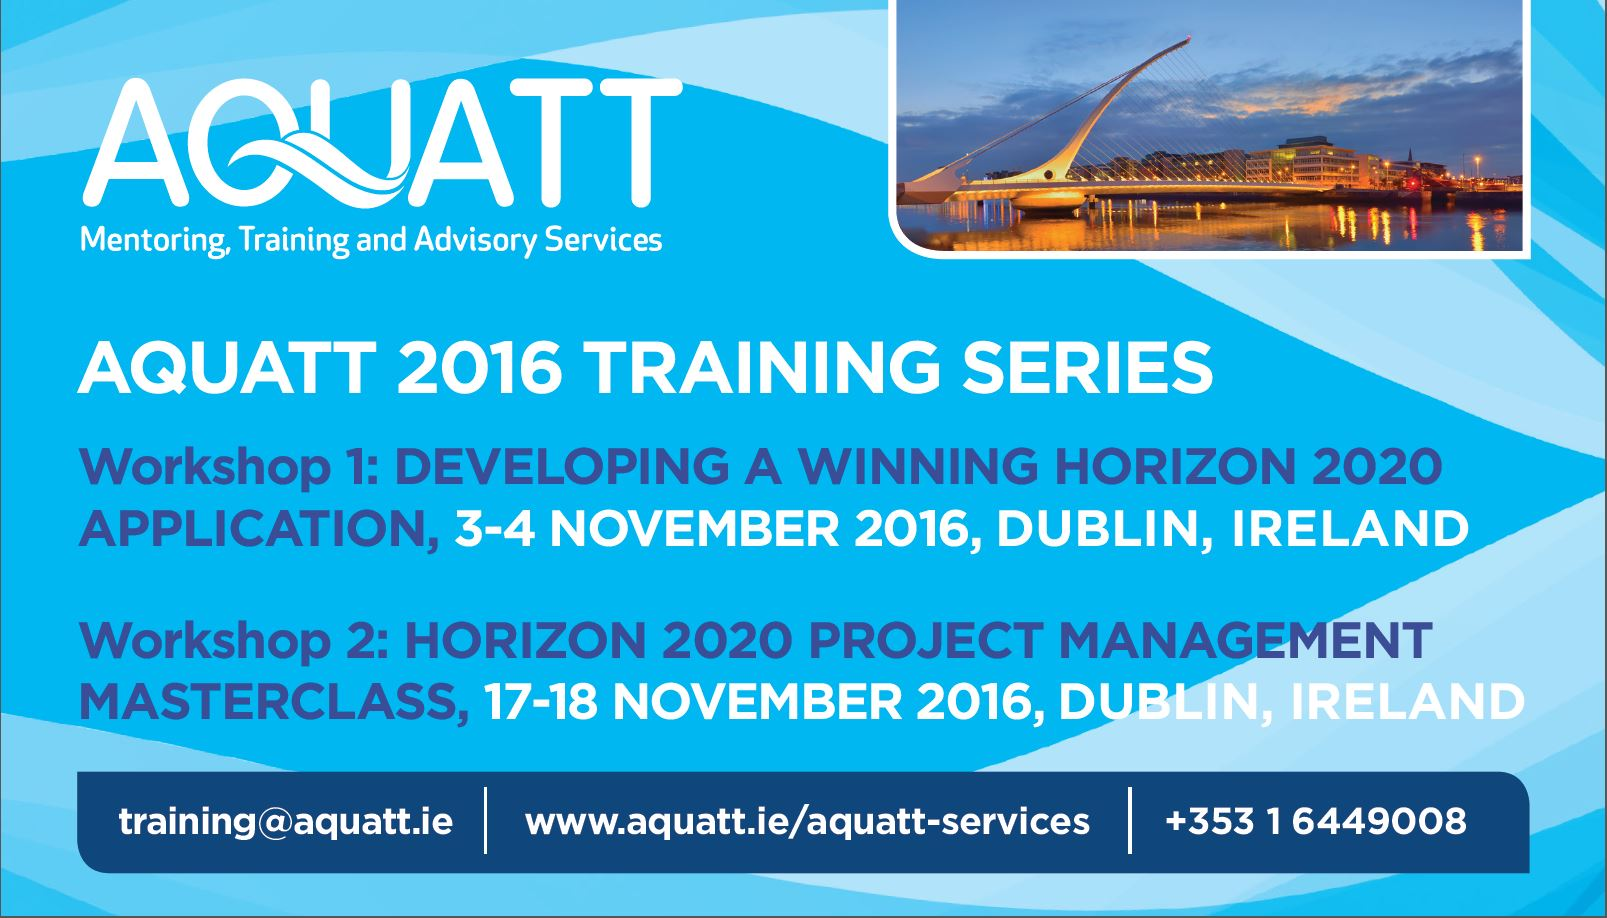 AquaTT Training Courses